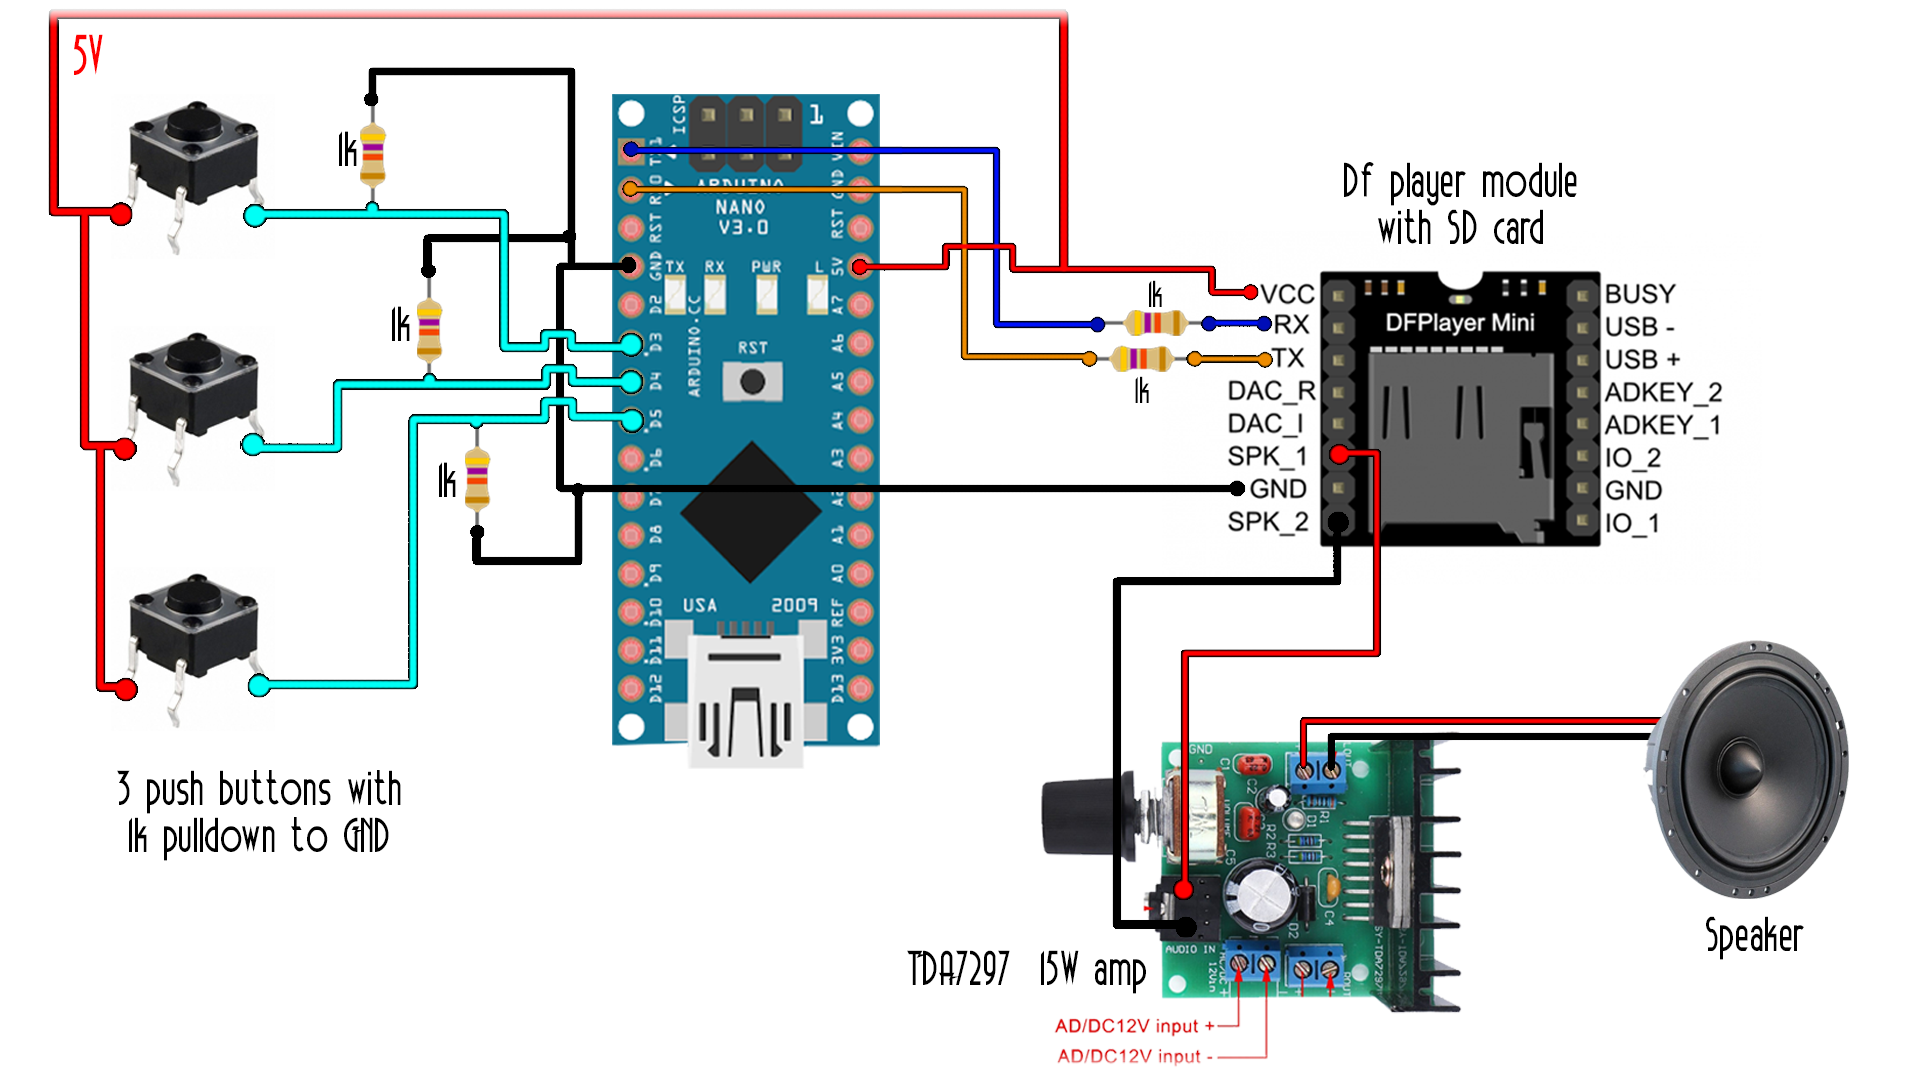 I2c Lcd Arduino Library Tutorial How To Build A Rotary Encoder Circuit With An Dfplayer